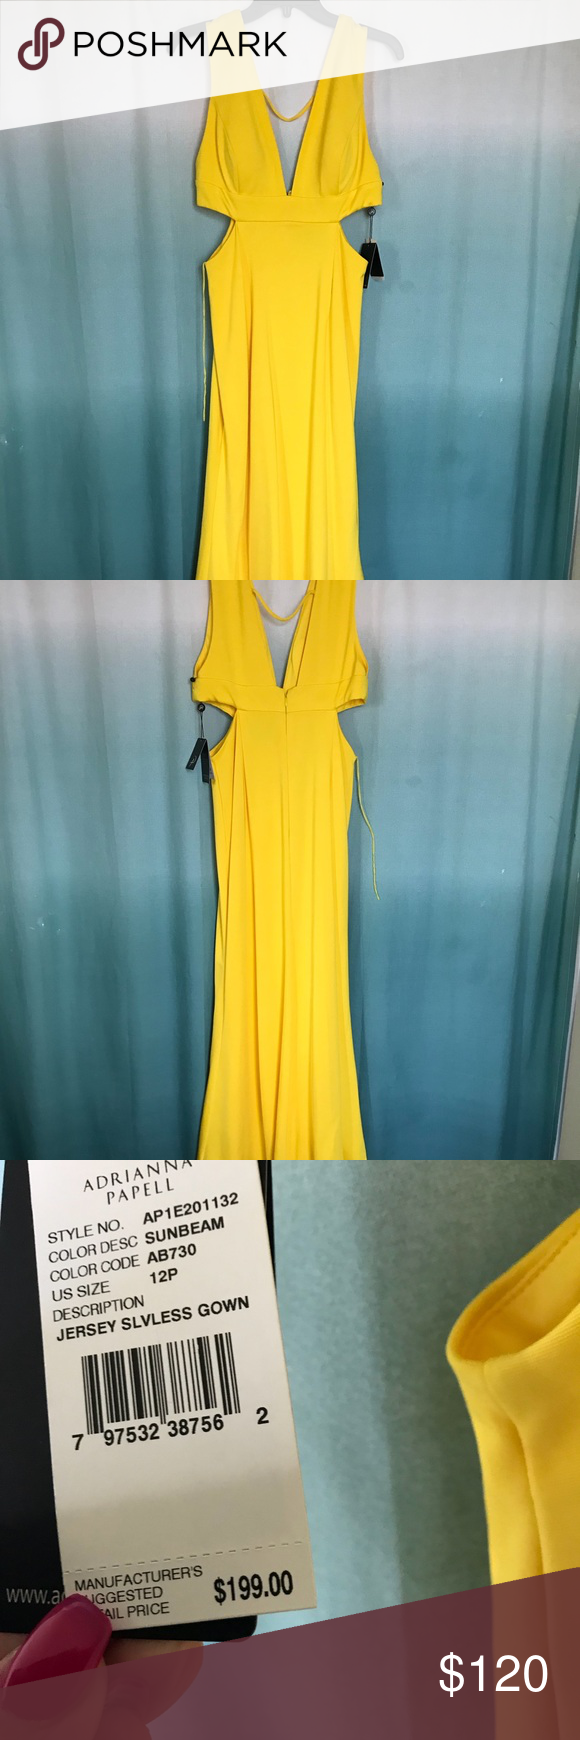 Nwt adrianna papell yellow long dress sz prom nwt yellow gown